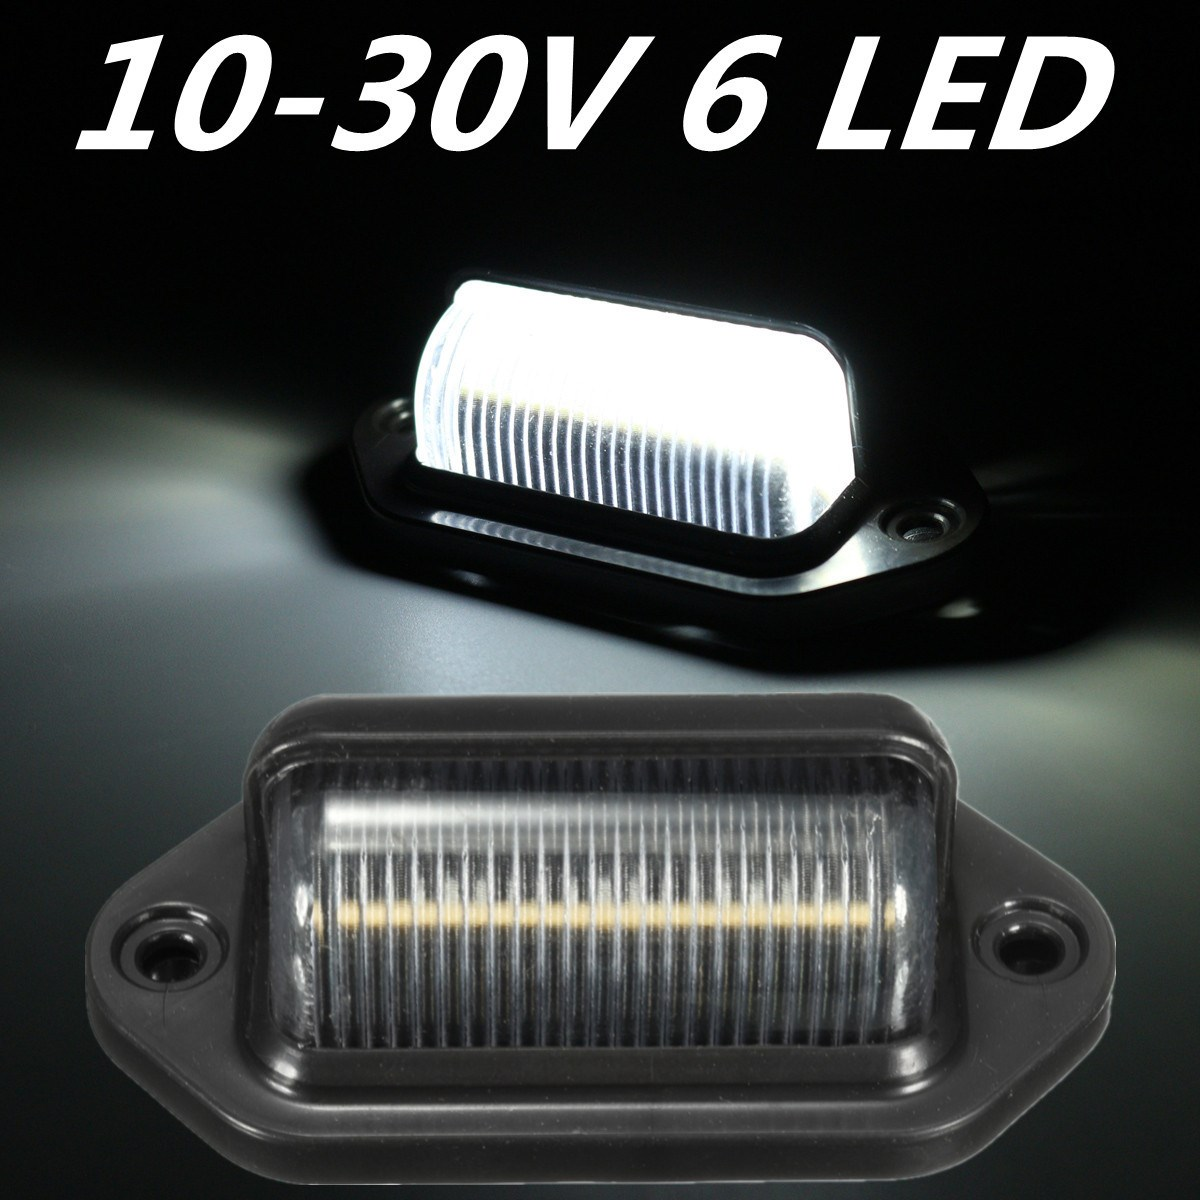 2x 10-30V 6LEDs License Plate Light Lamp Bulbs Number Plate Light For Motorcycle Boats Aircraft Automotive Trailer RV Truck 2pcs truck light 4 leds lamp